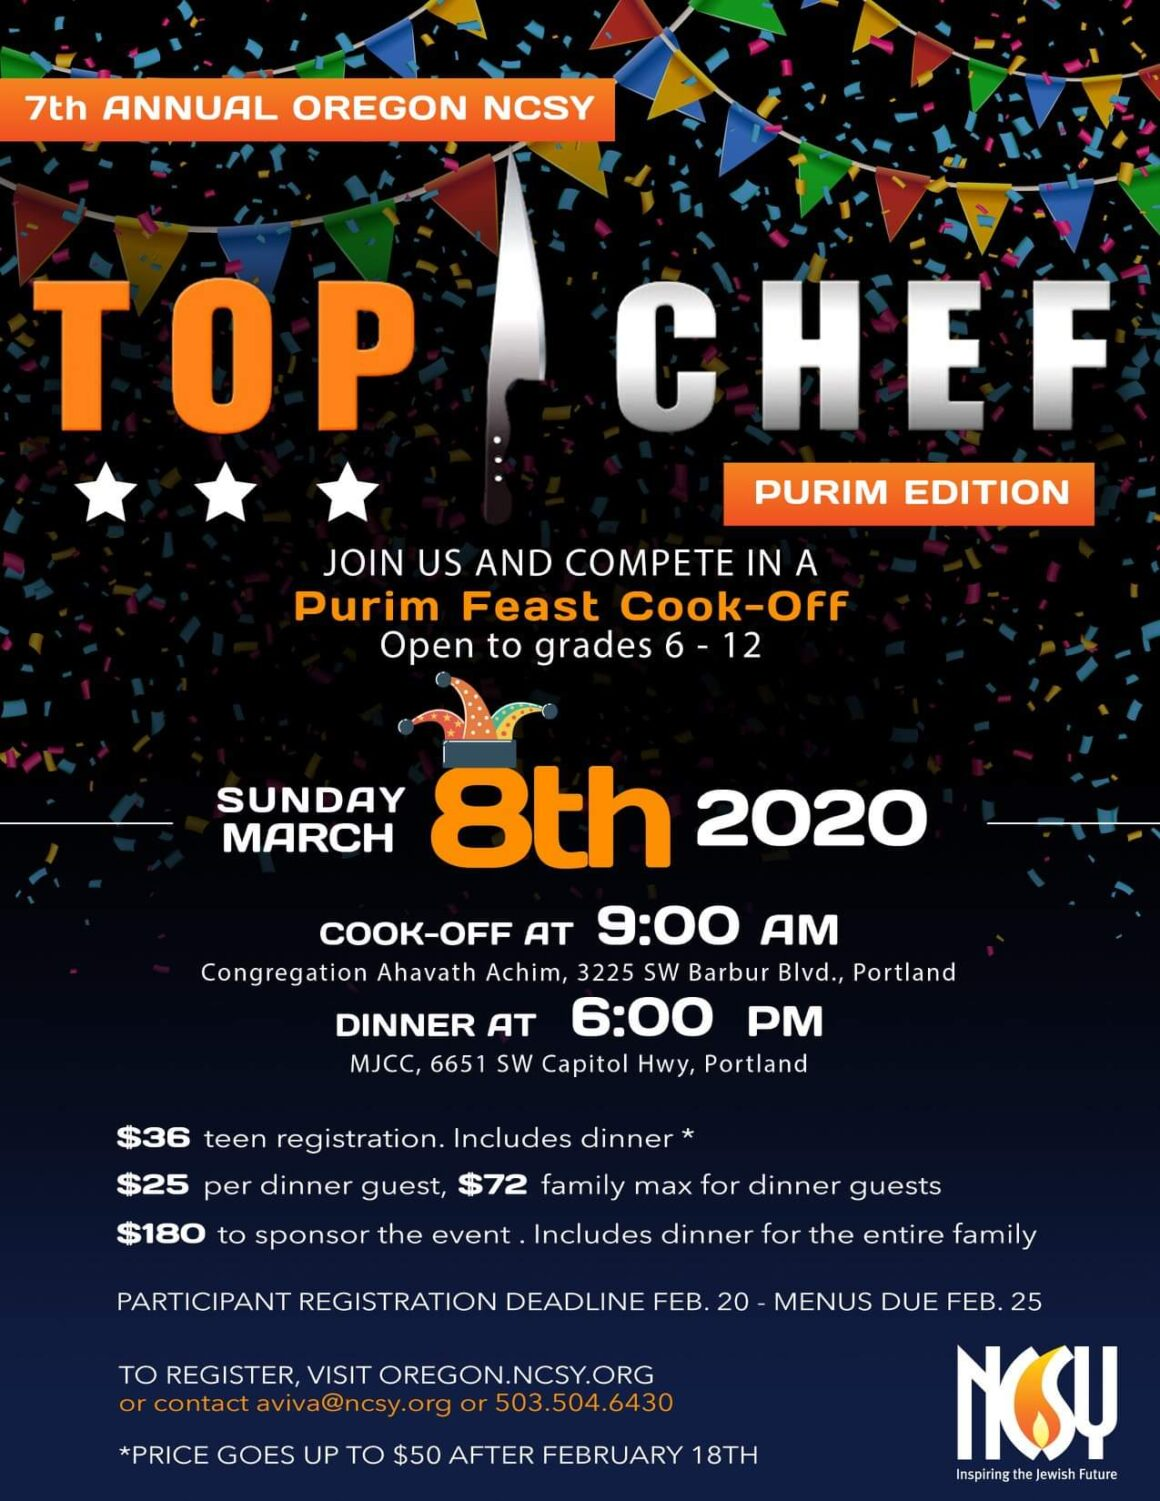 Top Chef Purim Edition @ Congregation Ahavath Achim